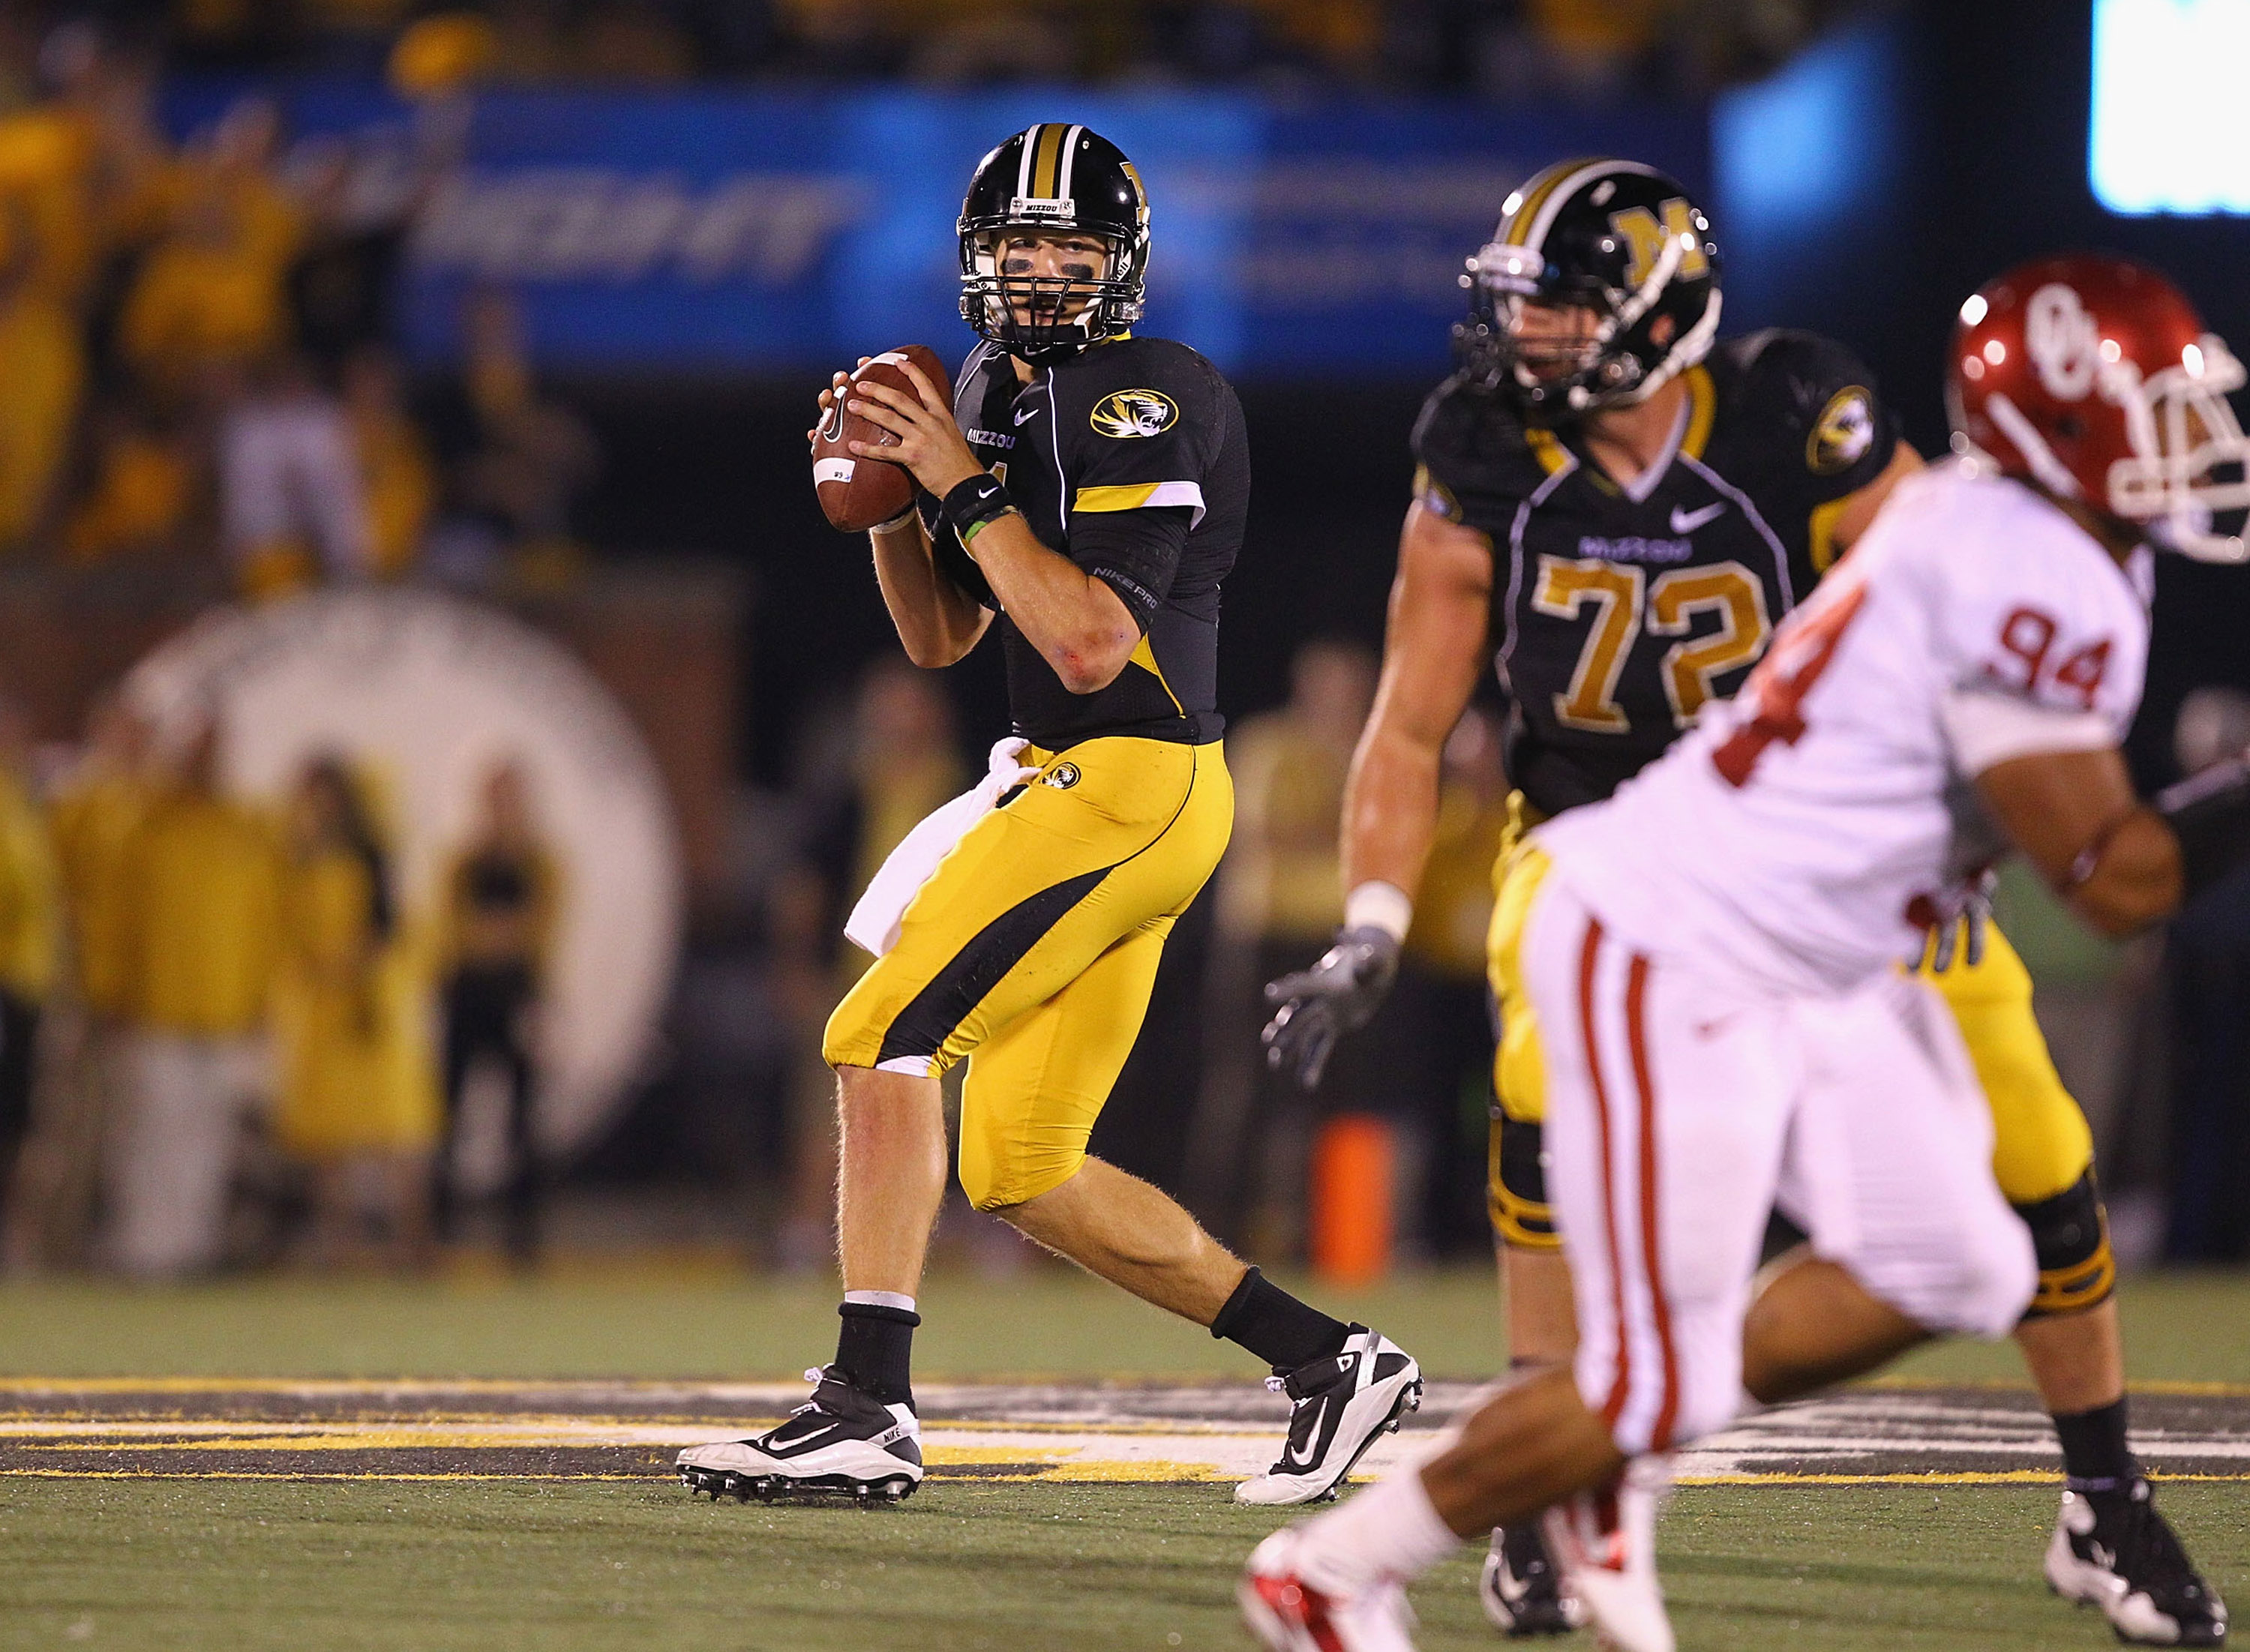 COLUMBIA, MO - OCTOBER 23: Blaine Gabbert #11 of the Missouri Tigers in action against the Missouri Tigers at Faurot Field/Memorial Stadium on October 23, 2010 in Columbia, Missouri.  The Tigers beat the Sooners 36-27.  (Photo by Dilip Vishwanat/Getty Ima